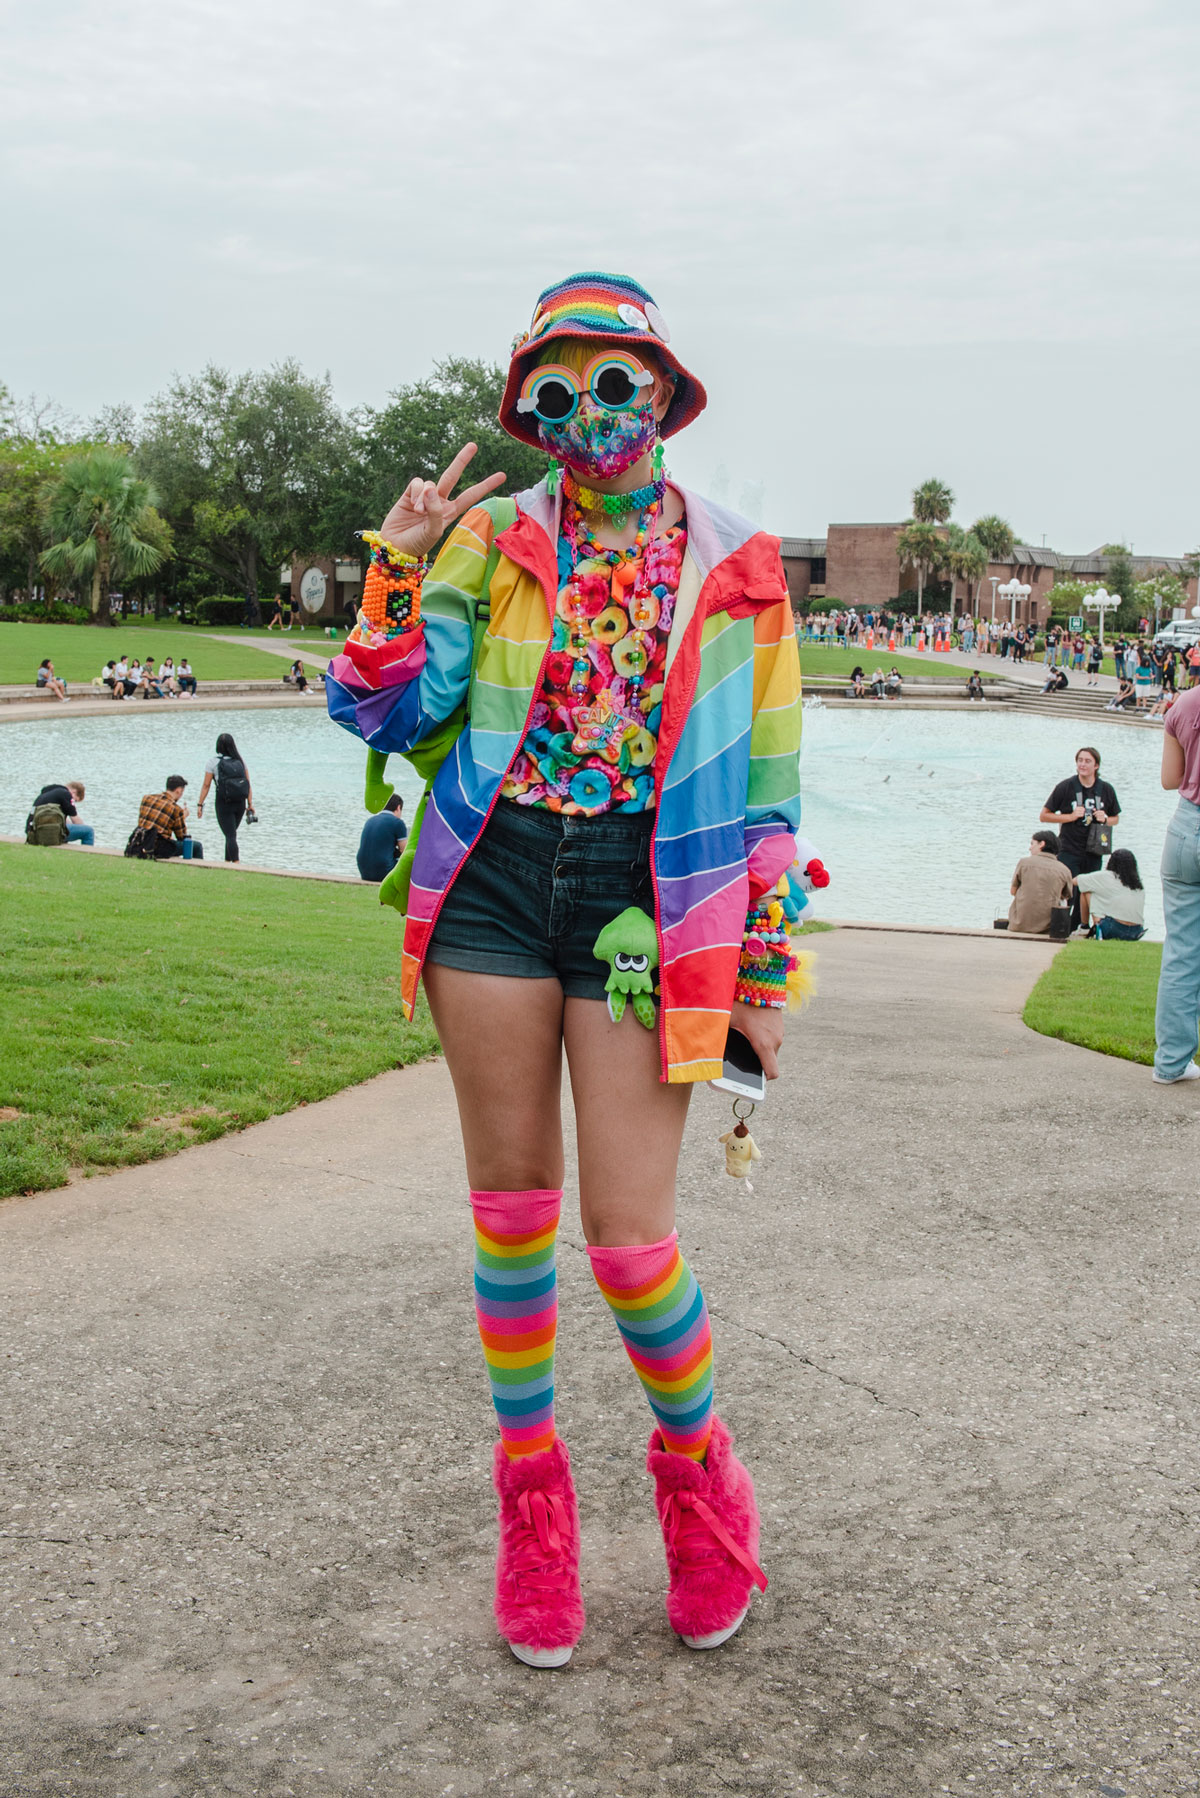 UCF student decked out in rainbow gear from head to toe near Reflecting Pond